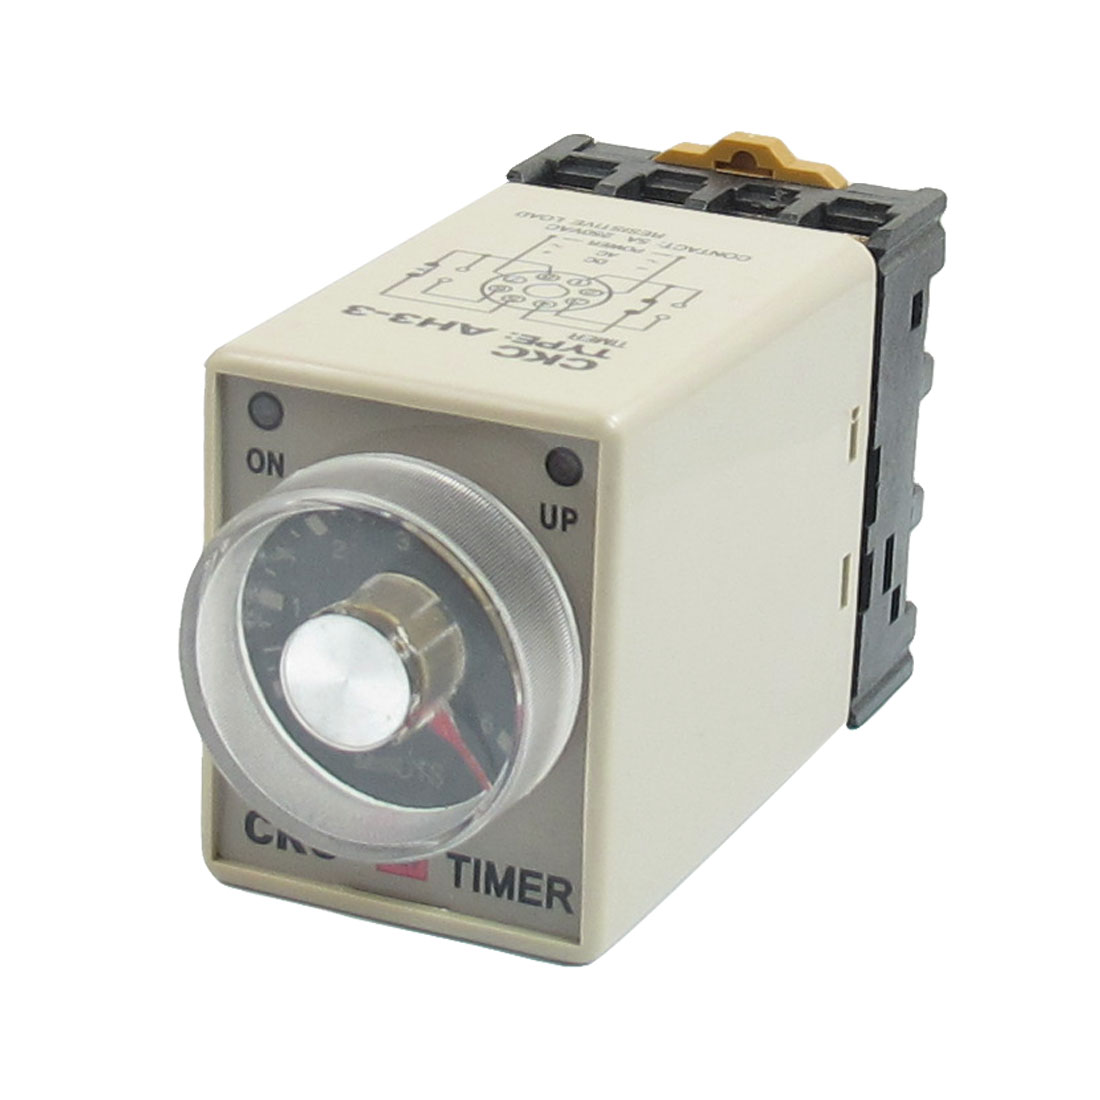 On/Up LED Indicator 0-6 Minutes 8P AH3-3 Power Timing Relay 110VAC w Base